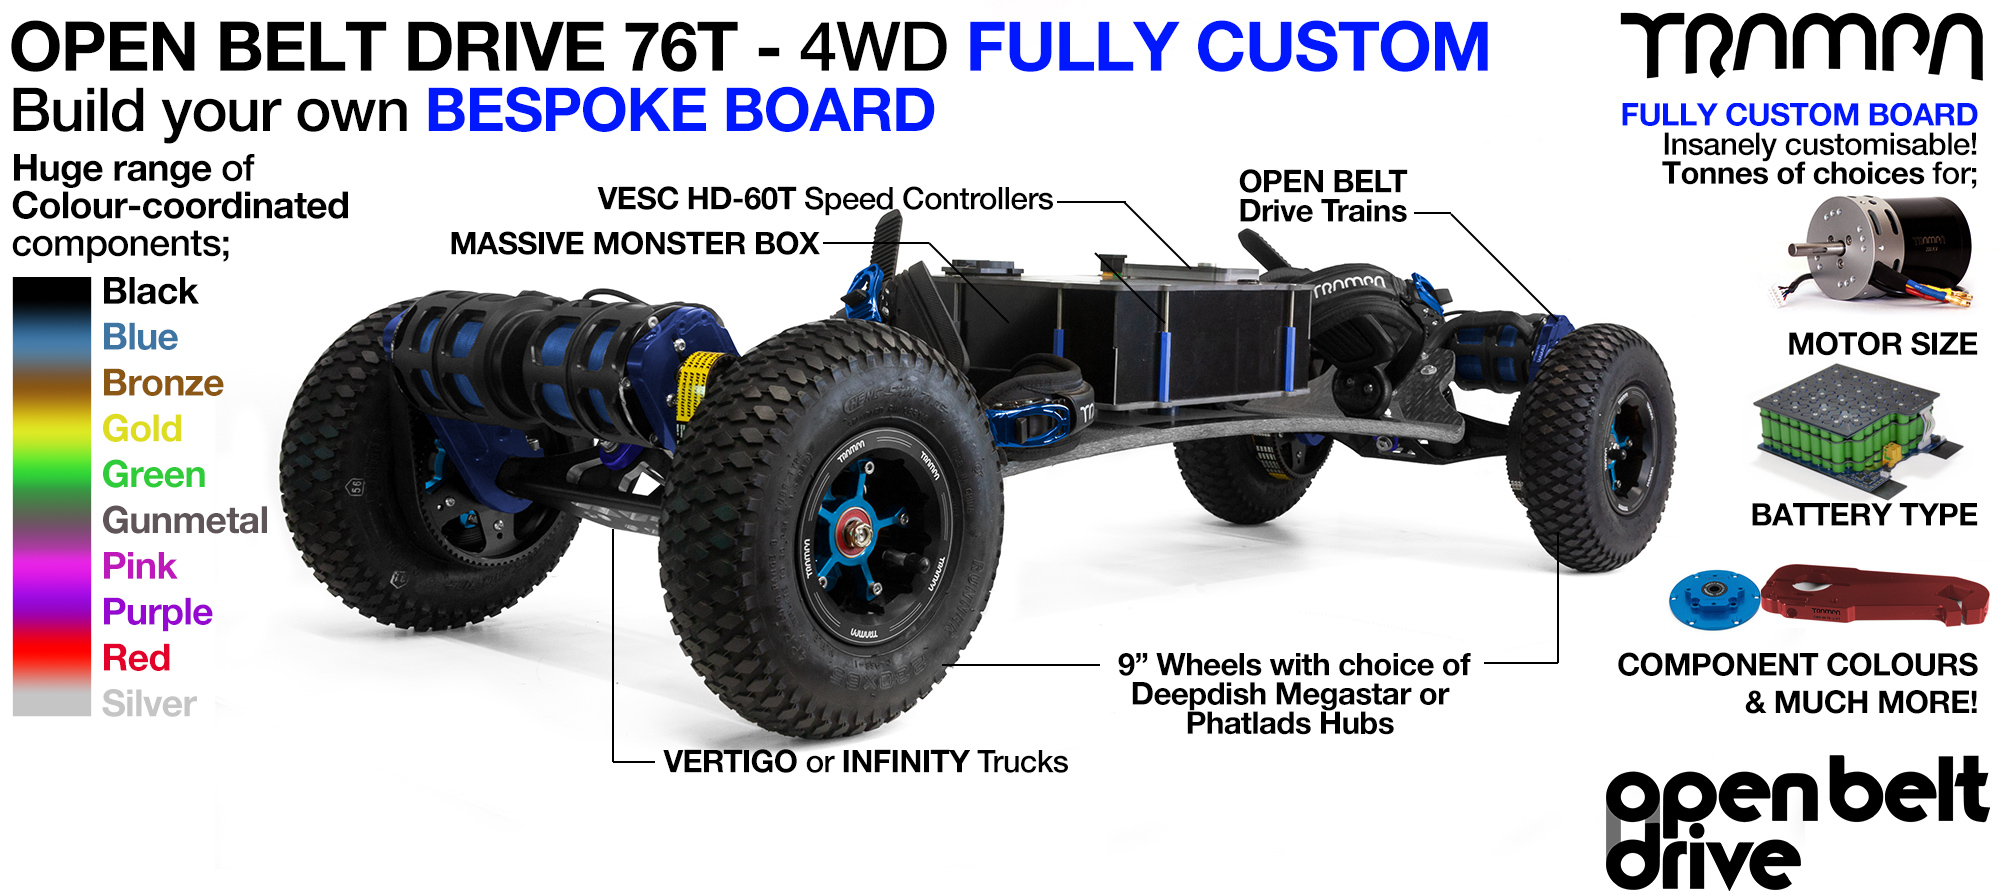 4WD 66T Open Belt Drive TRAMPA Electric Mountainboard with 9Inch Wheels & 76 Tooth Pulleys - CUSTOM